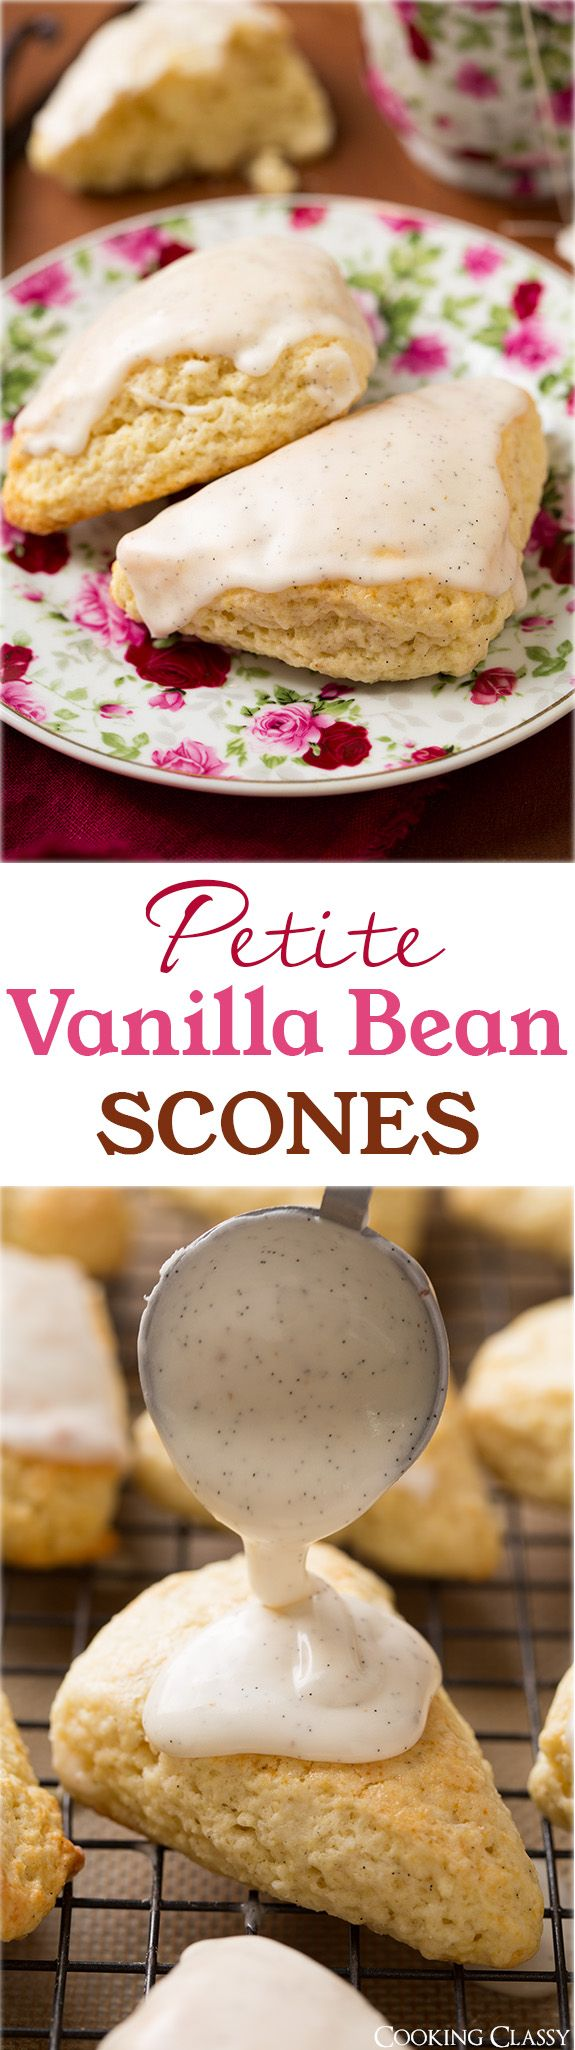 Petite Vanilla Bean Scones with Vanilla Bean Glaze (better than Starbucks!) - these are to die for! Soft, moist and utterly delicious.